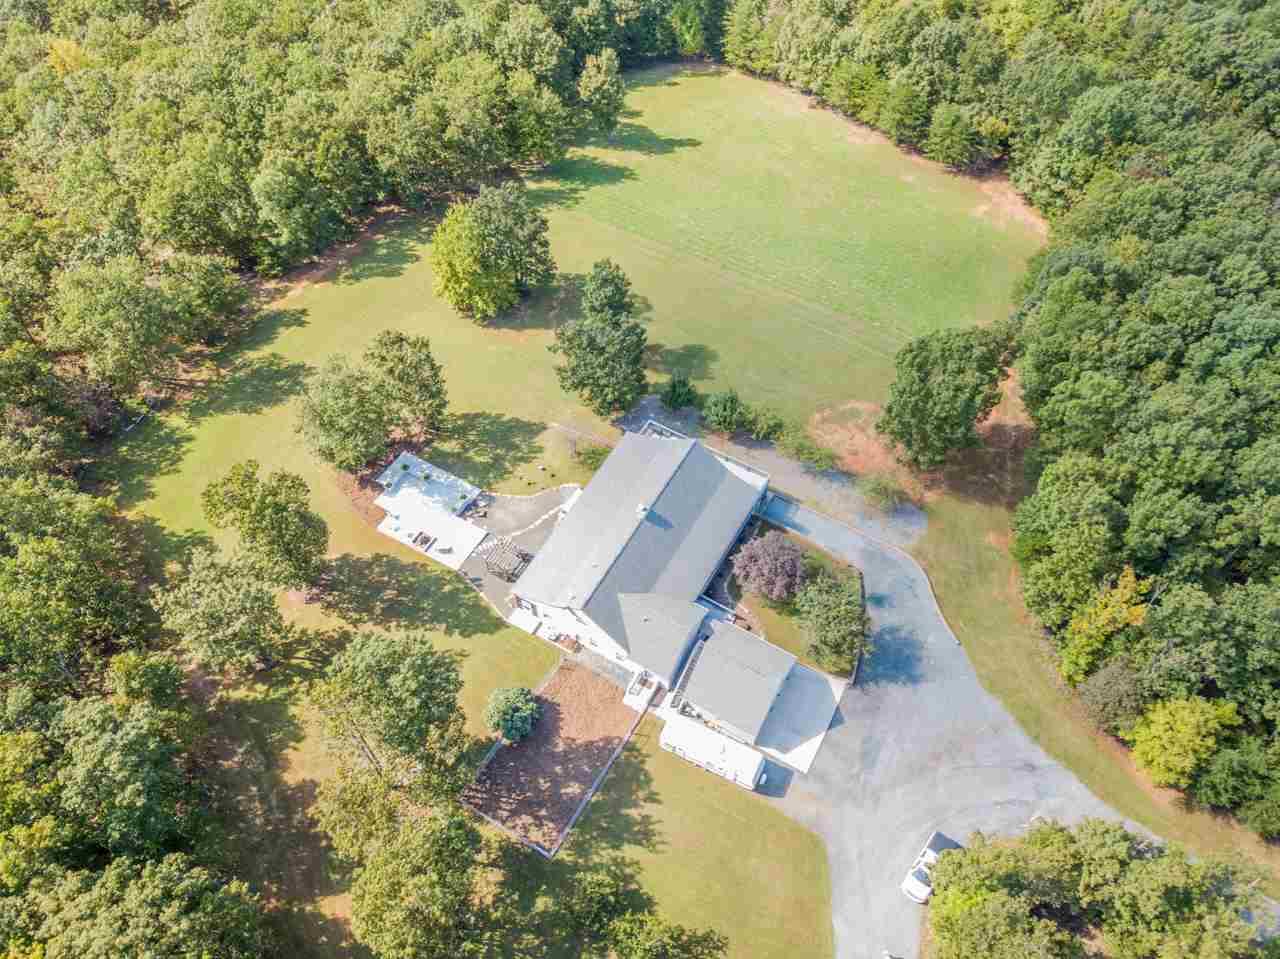 1798 Earley Farm Rd, Amherst, VA, 24521